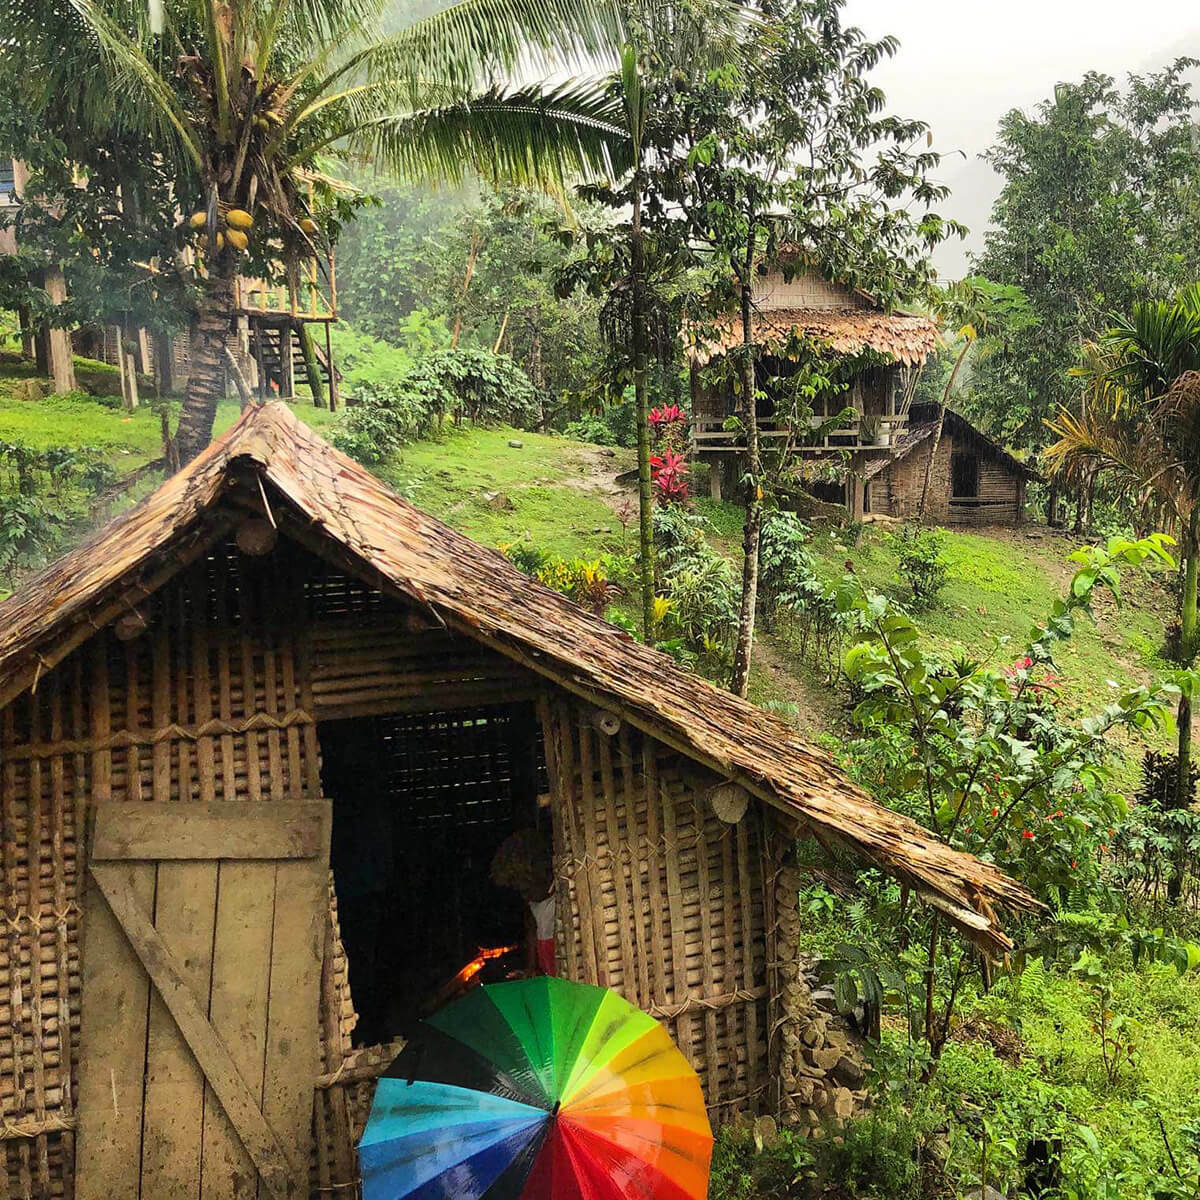 A woven hut with a rainbow umbrella stands in a jungle with two more huts in the background